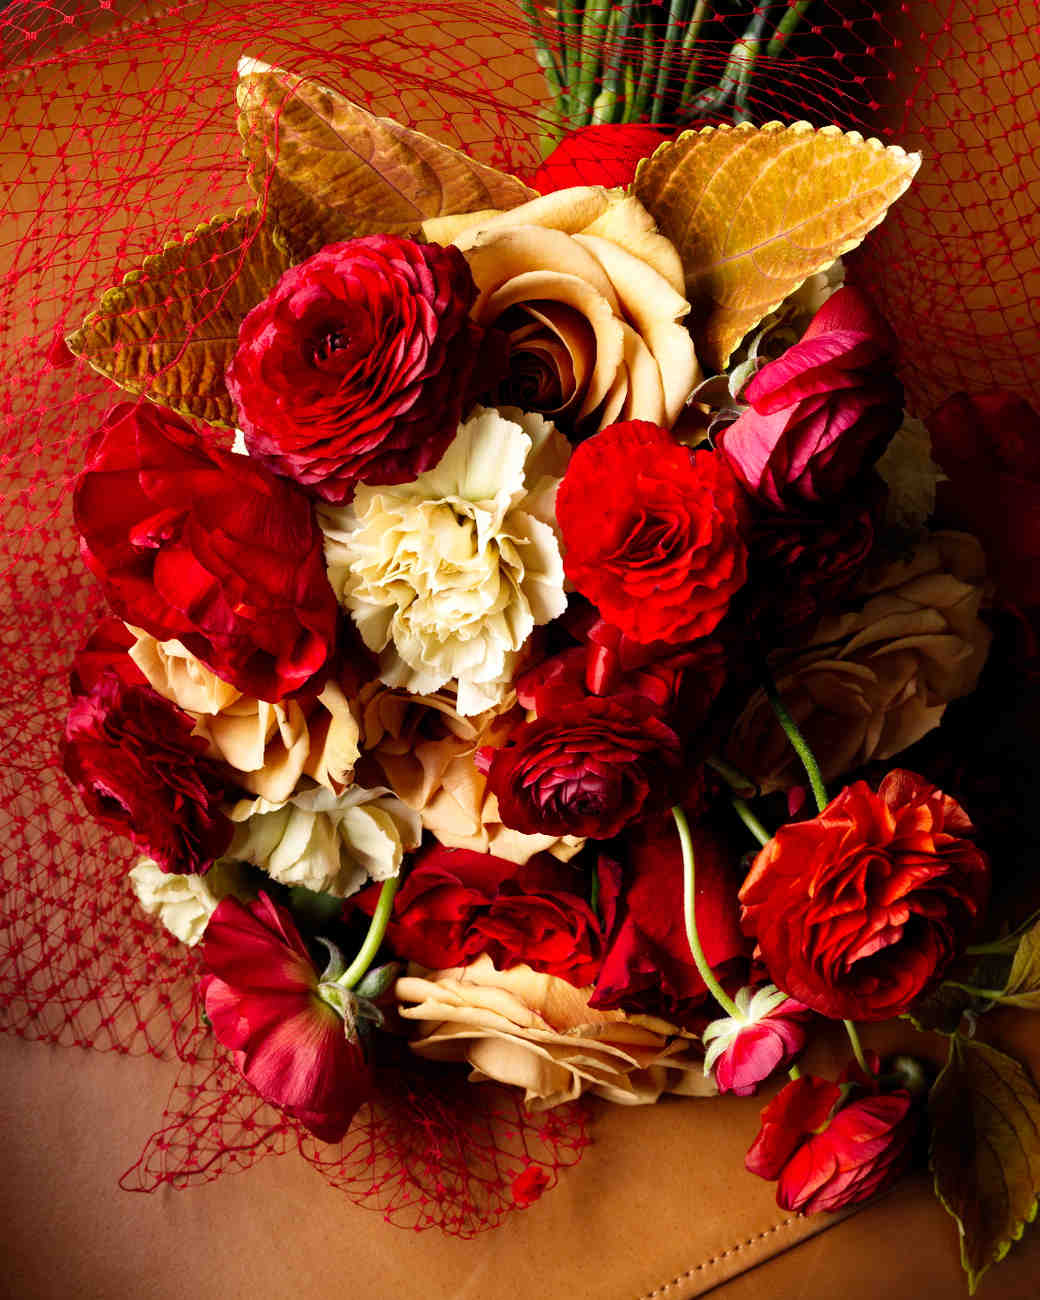 Romantic Red Wedding Ideas: 34 Romantic Red Wedding Bouquets